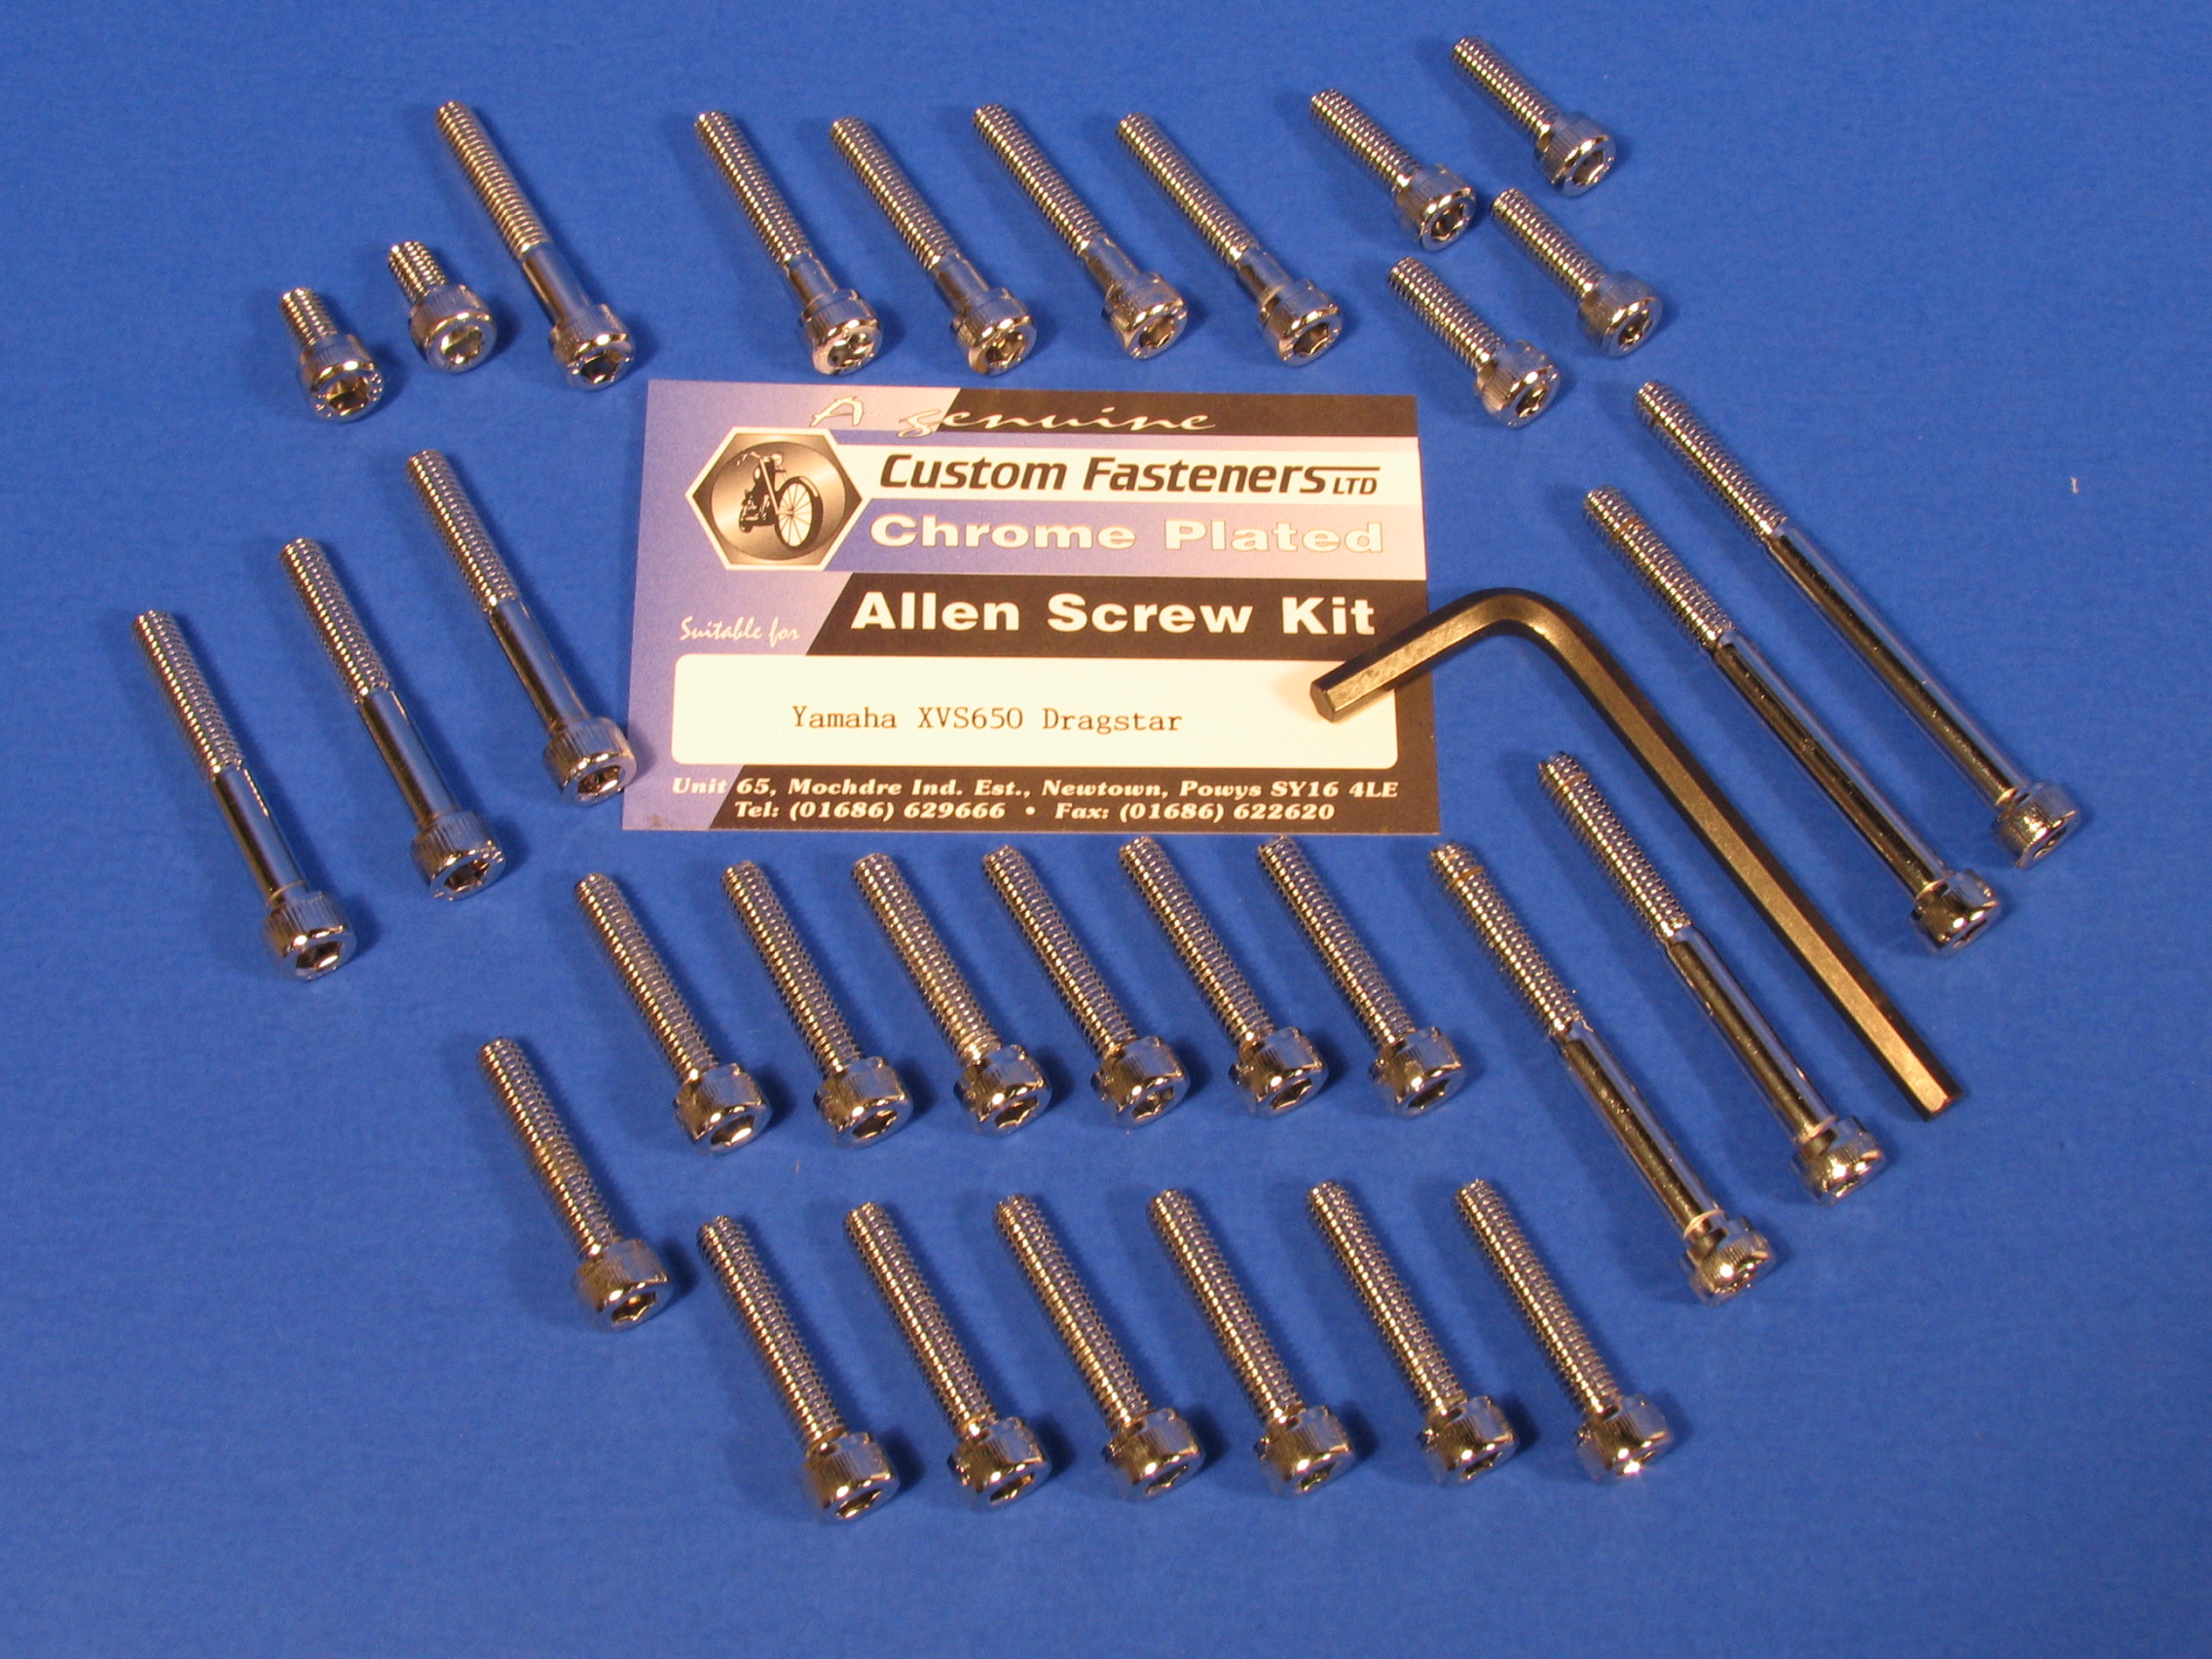 Laverda Allen Screw Kits